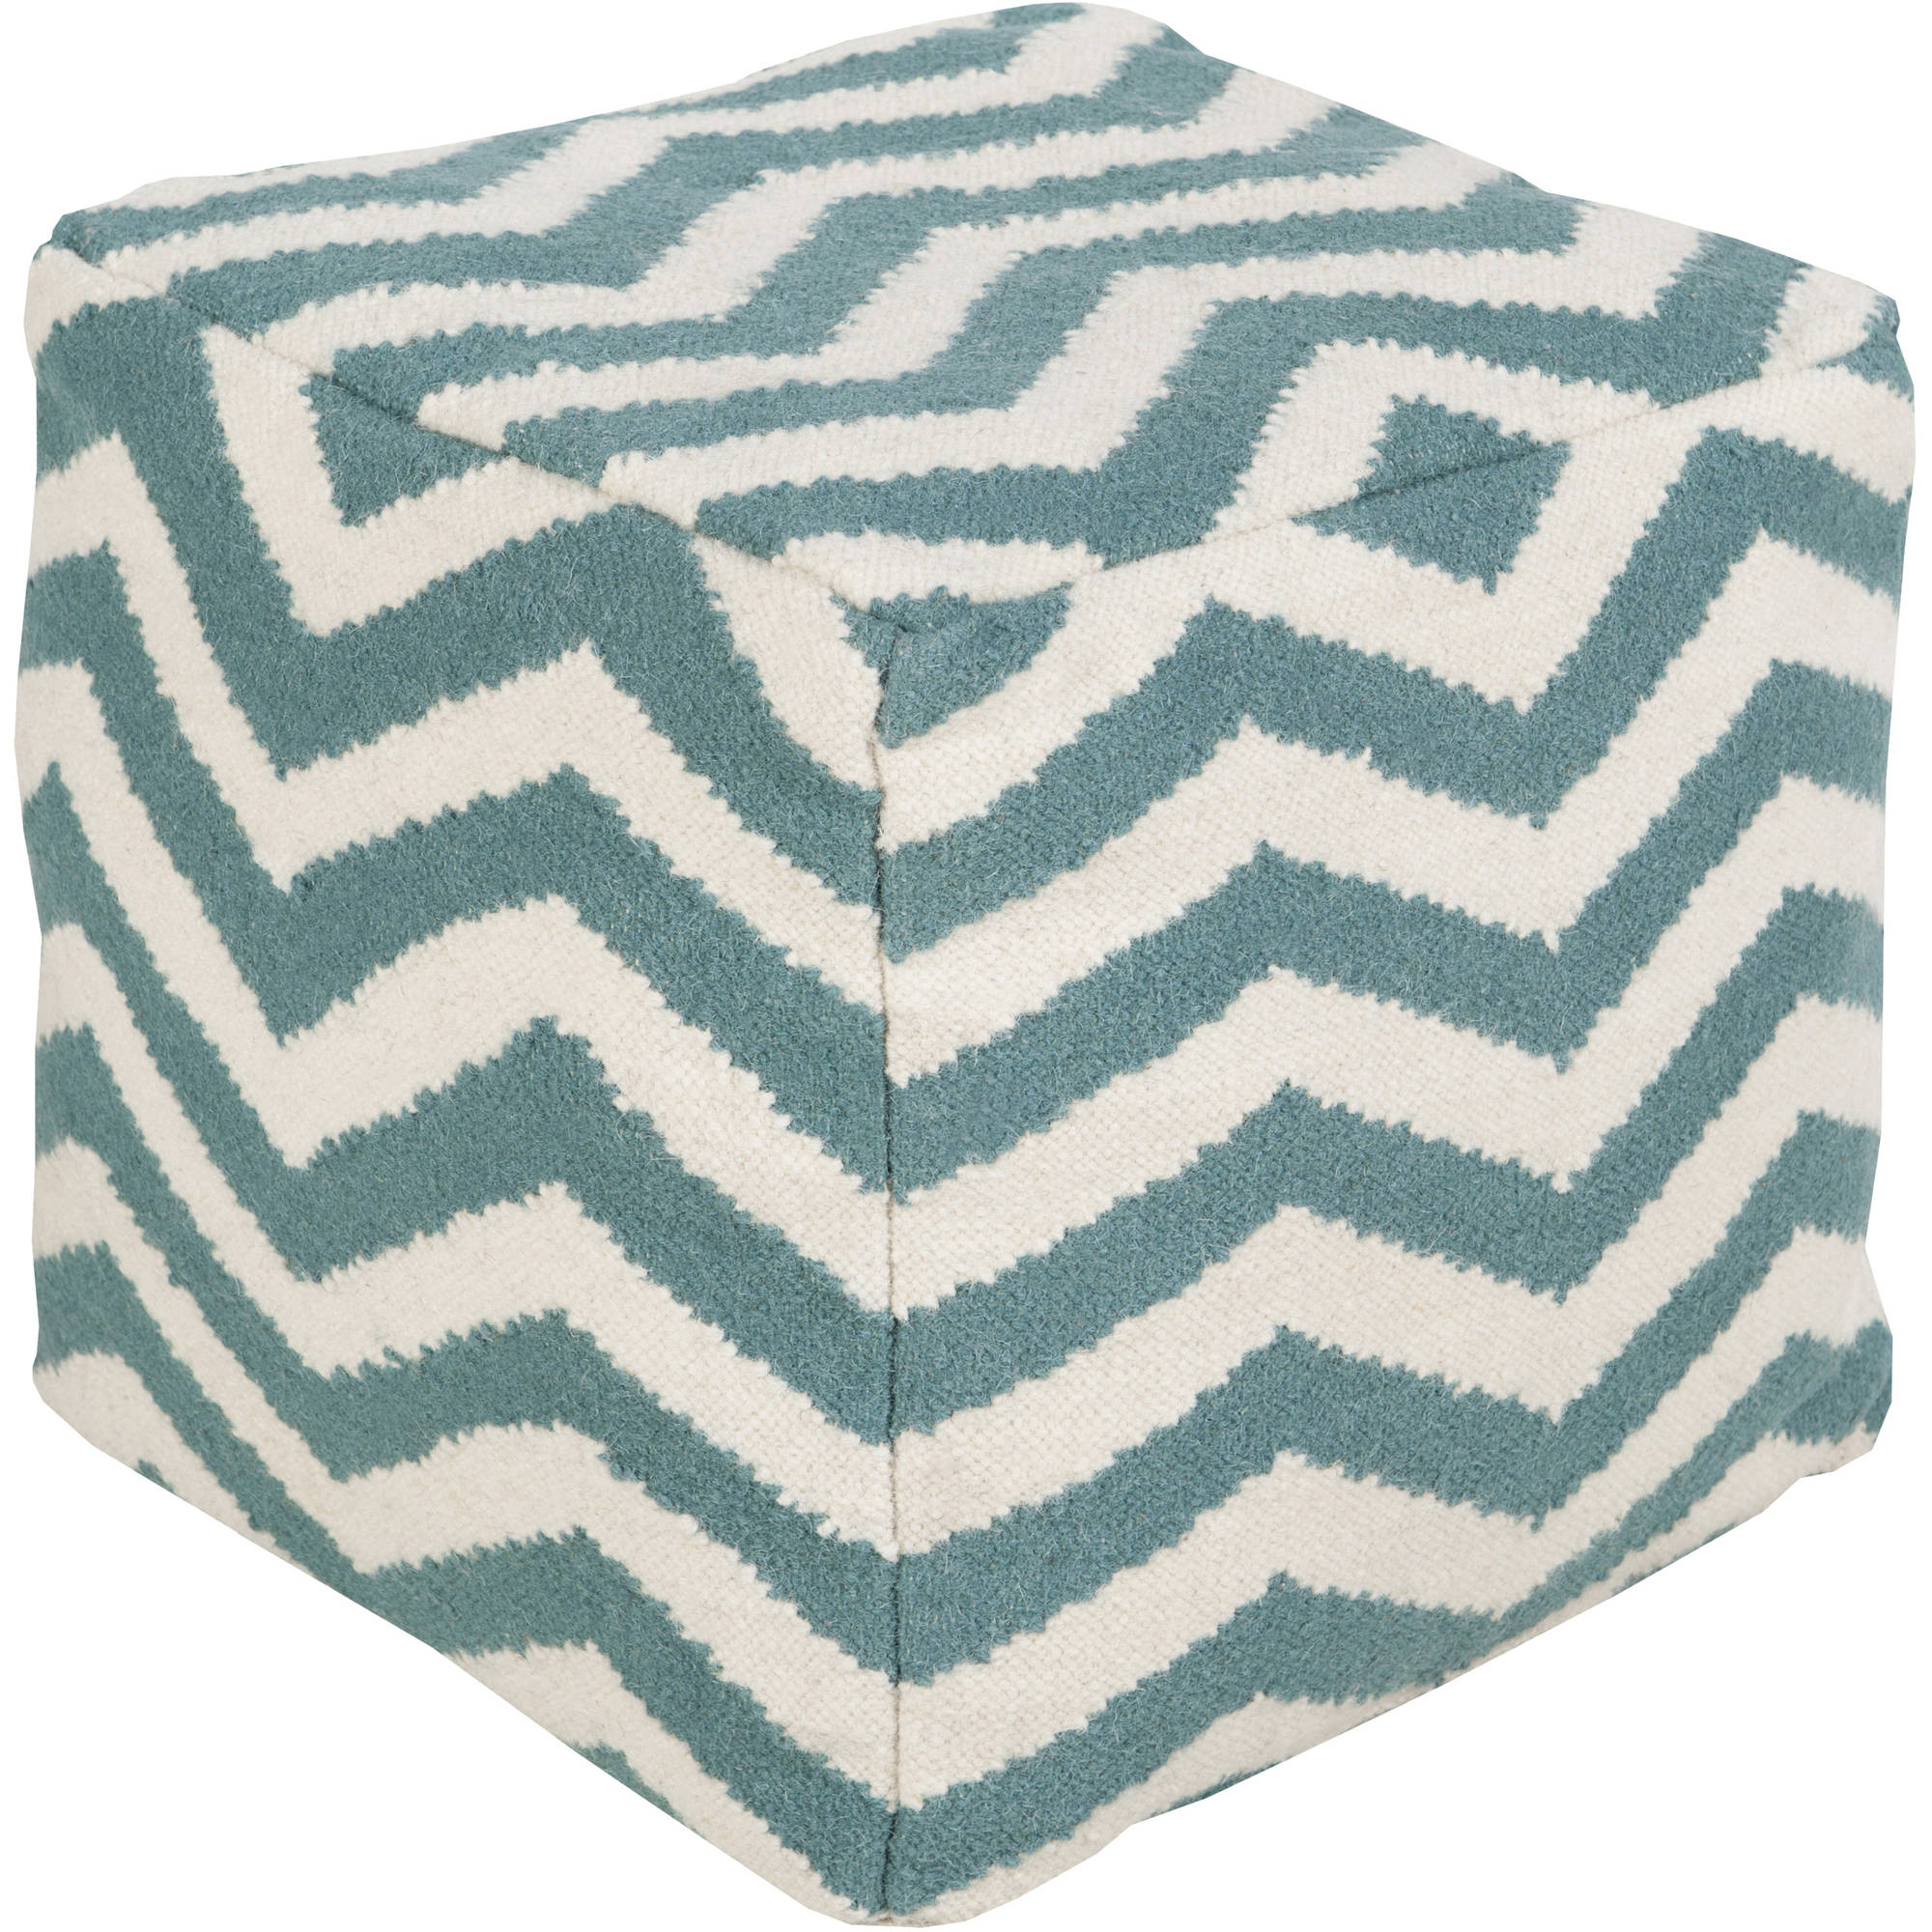 Libby Langdon Finley Hand Made Chevron Wool Pouf